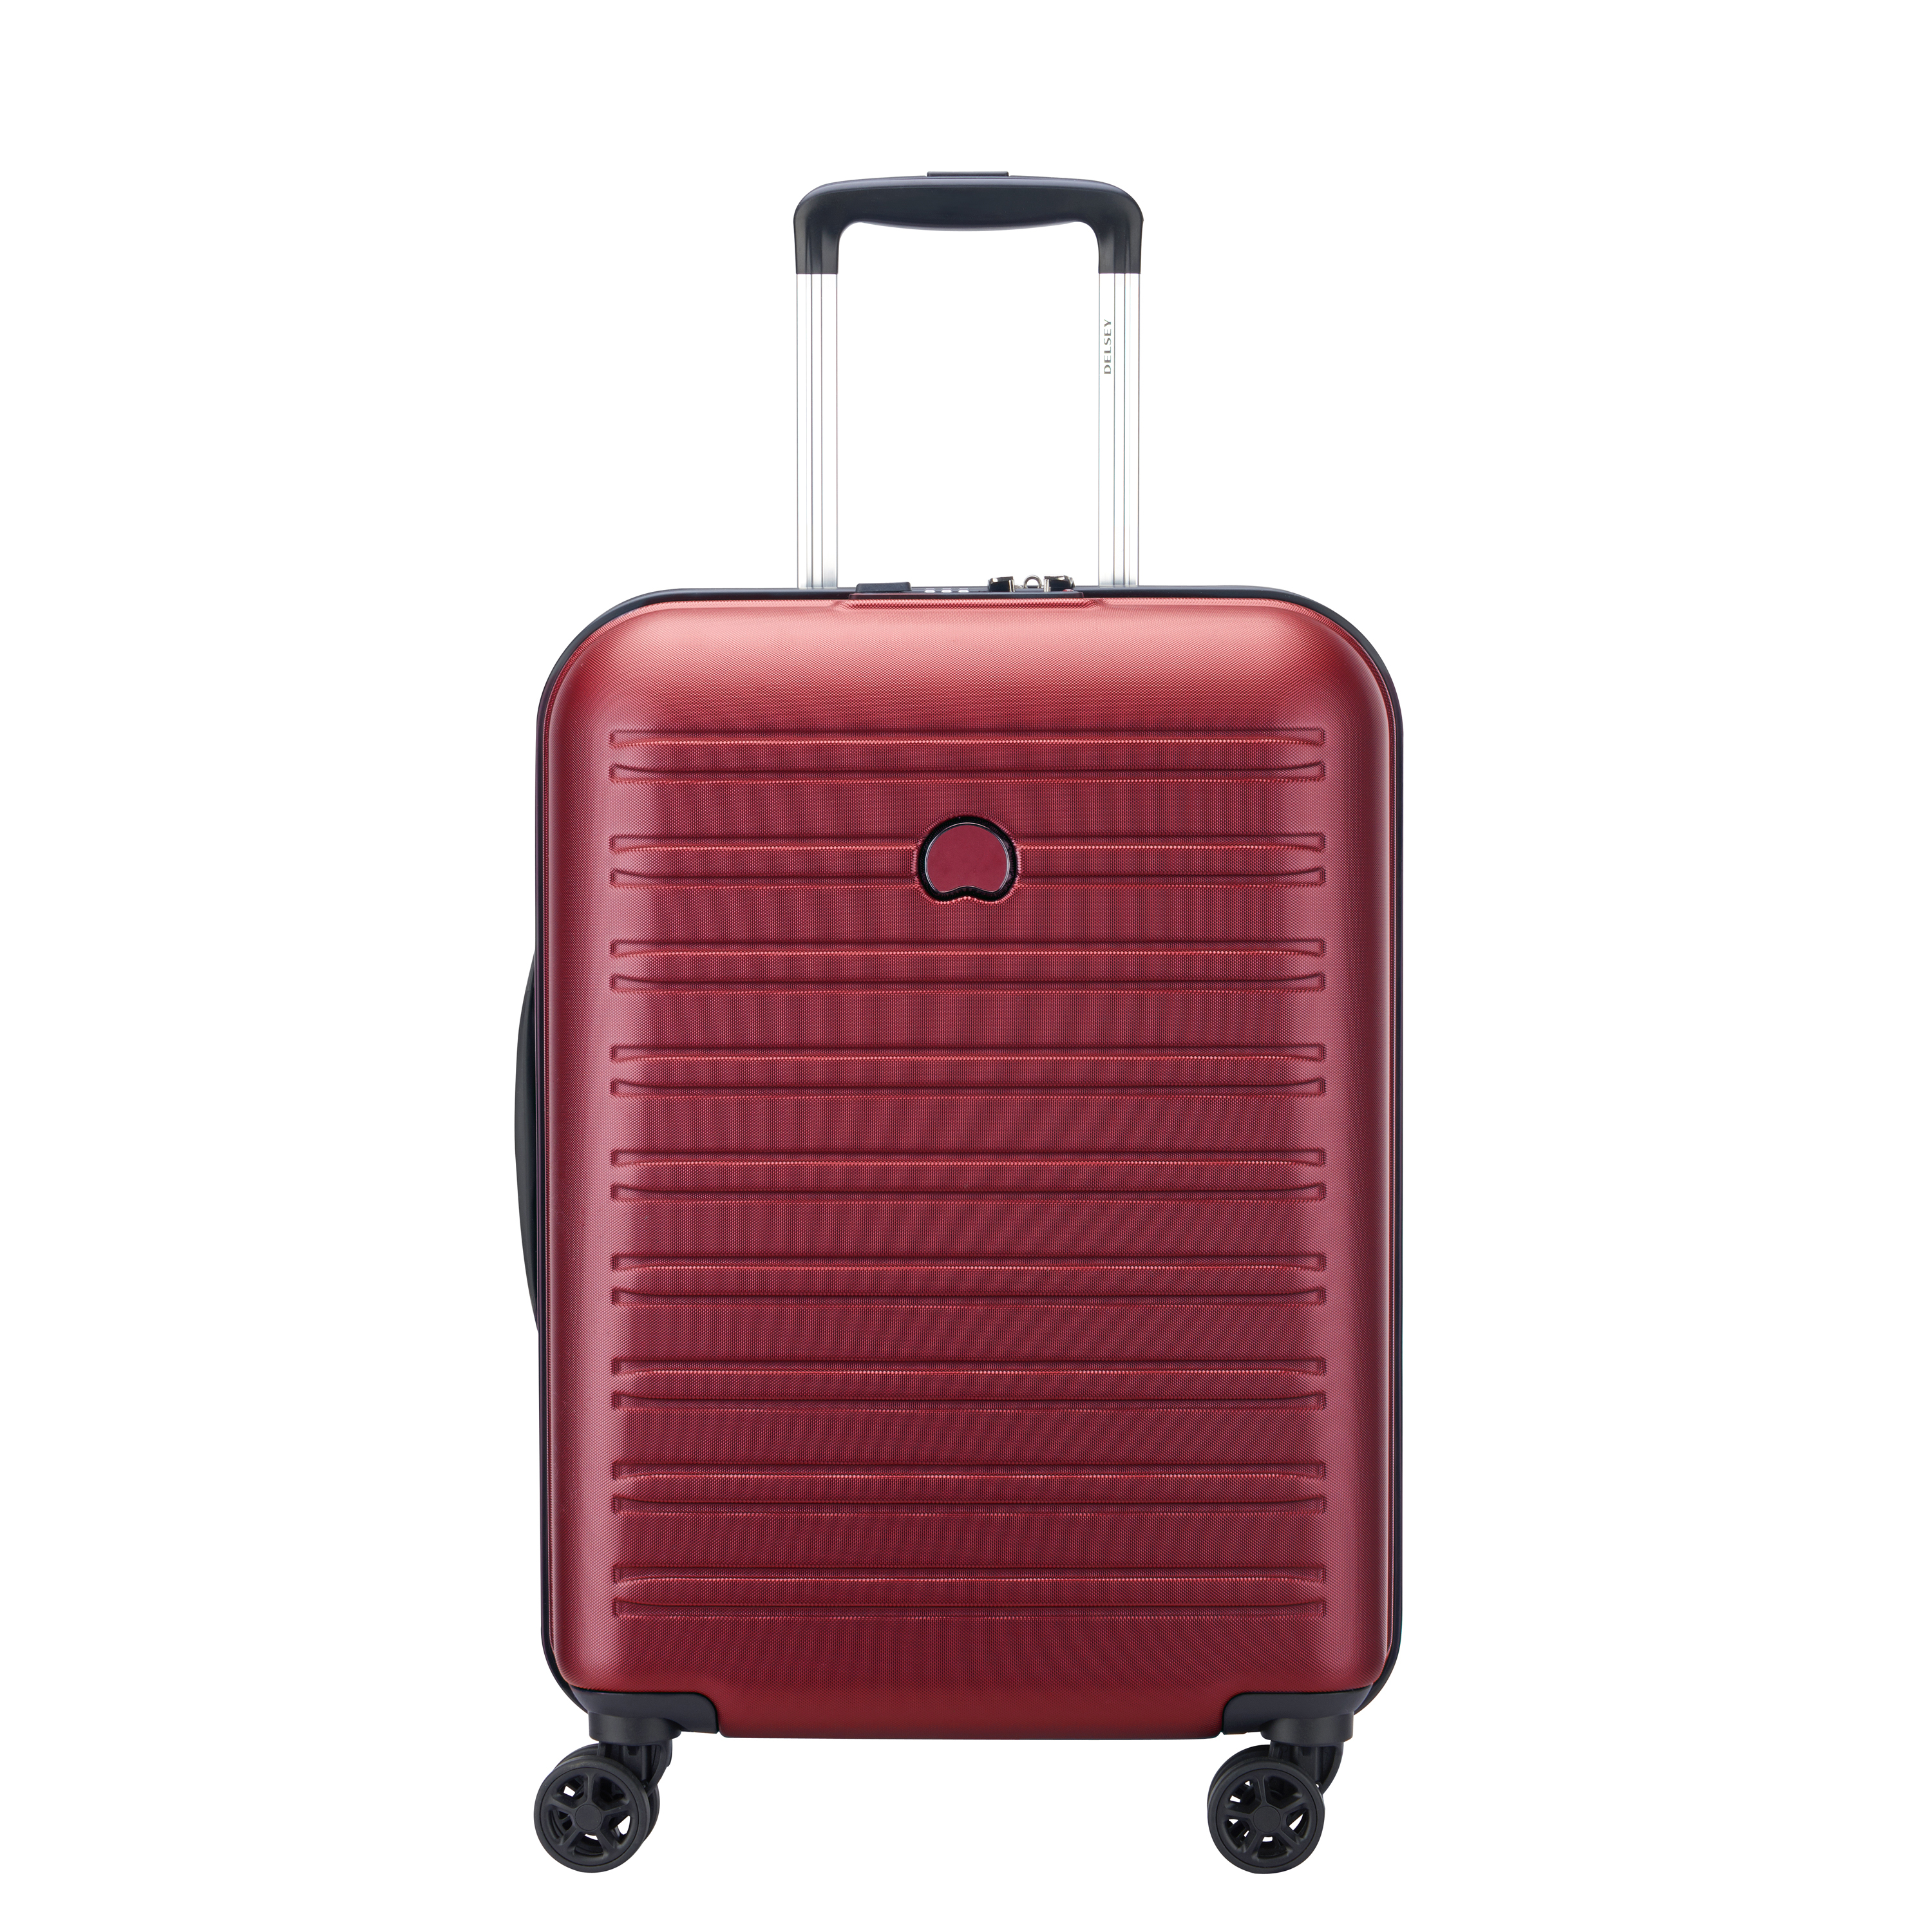 Delsey Segur slim 55 red 2038803-04 36l